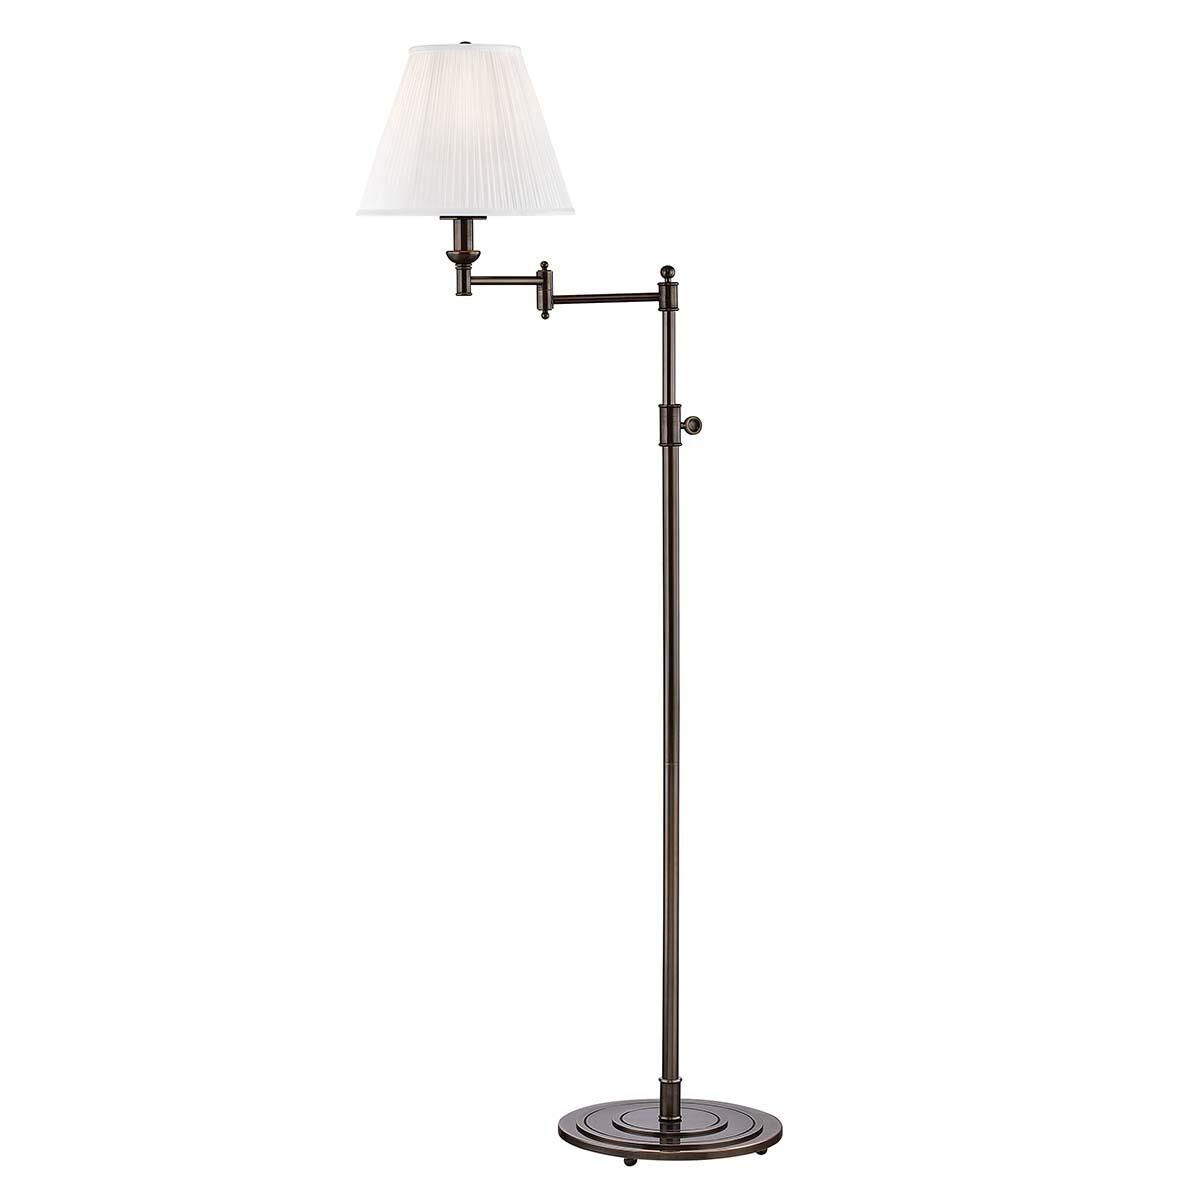 Hudson Valley Lighting Mark D. Sikes Signature No. 1 57 Inch Floor Lamp Signature No. 1 - MDSL601-DB - Transitional